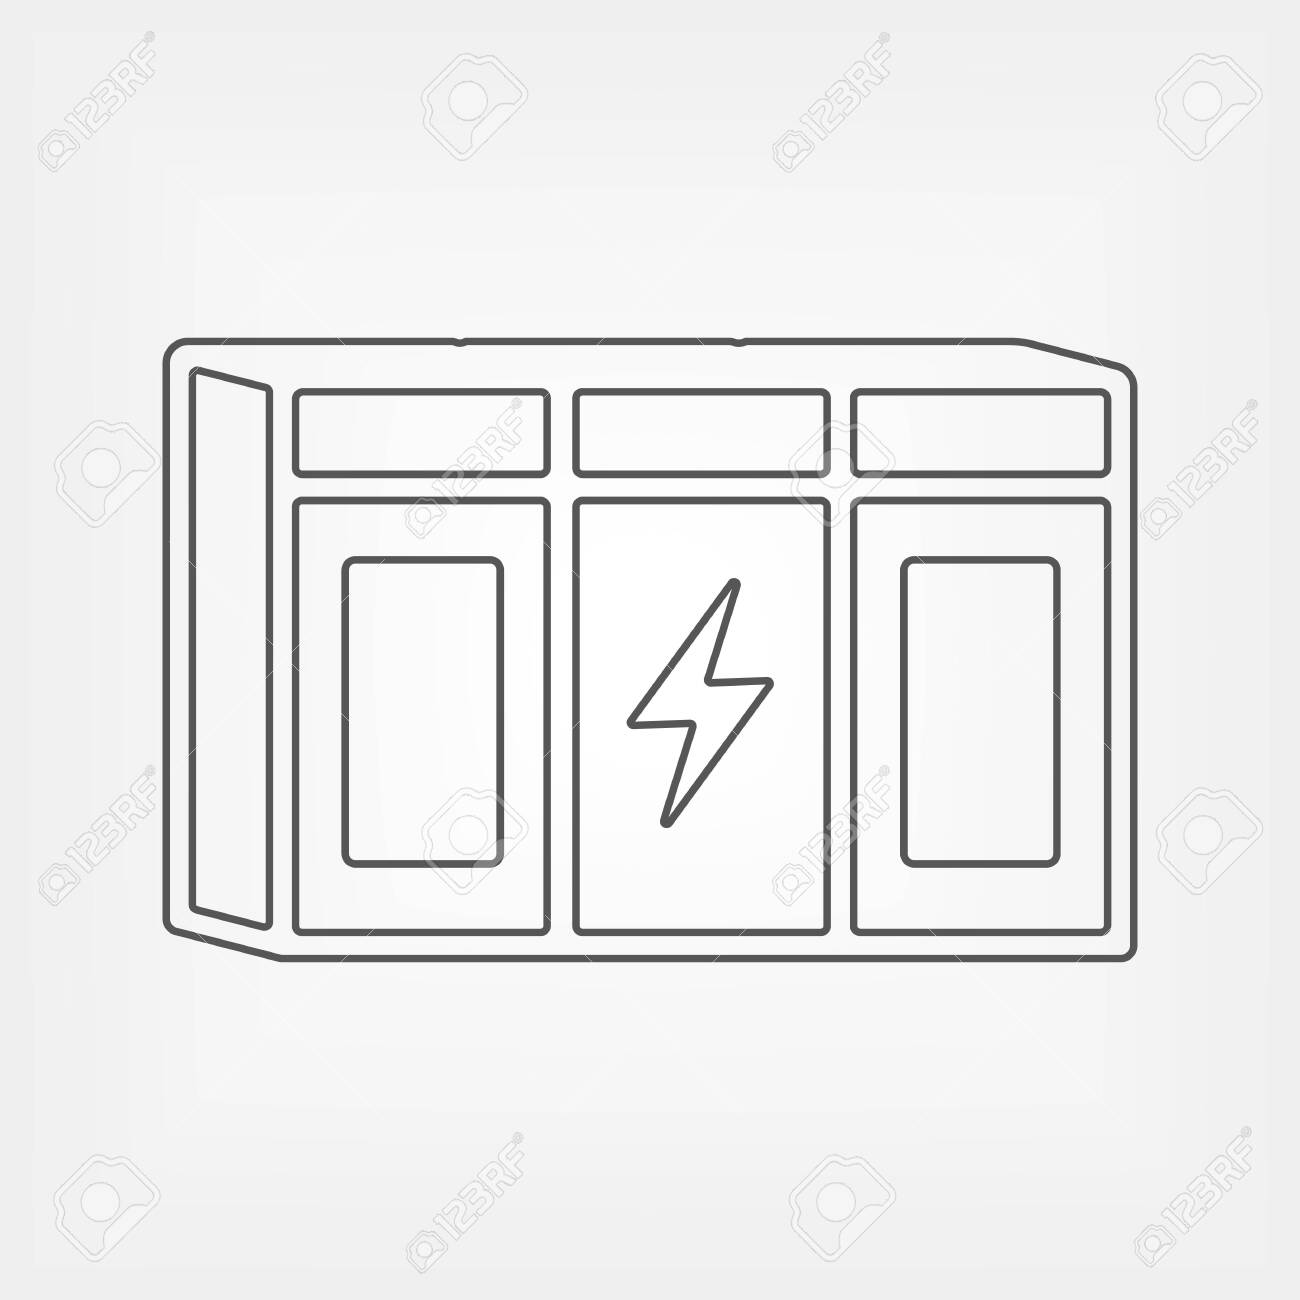 Large Rechargeable Li Ion Battery Outline Icon Energy Storage Royalty Free Cliparts Vectors And Stock Illustration Image 149436084